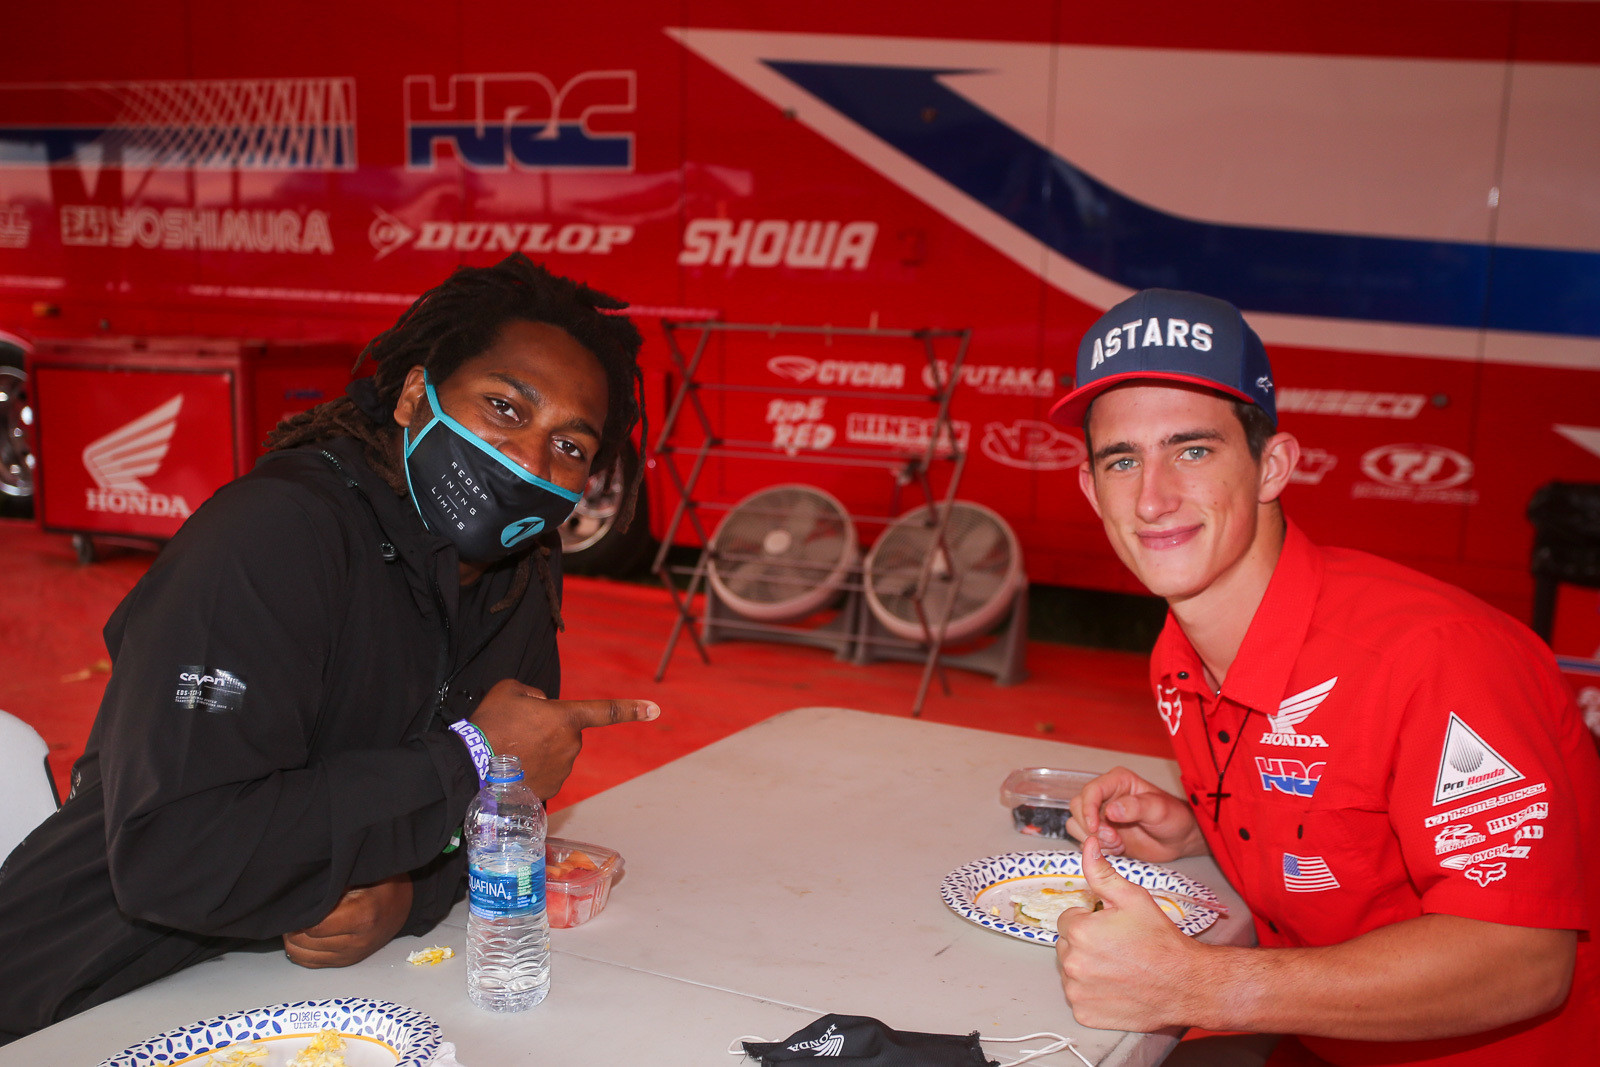 It was good to see James Stewart back at the races. He was hanging out under the Team Honda HRC tent with Chase Sexton for a little early morning breakfast.